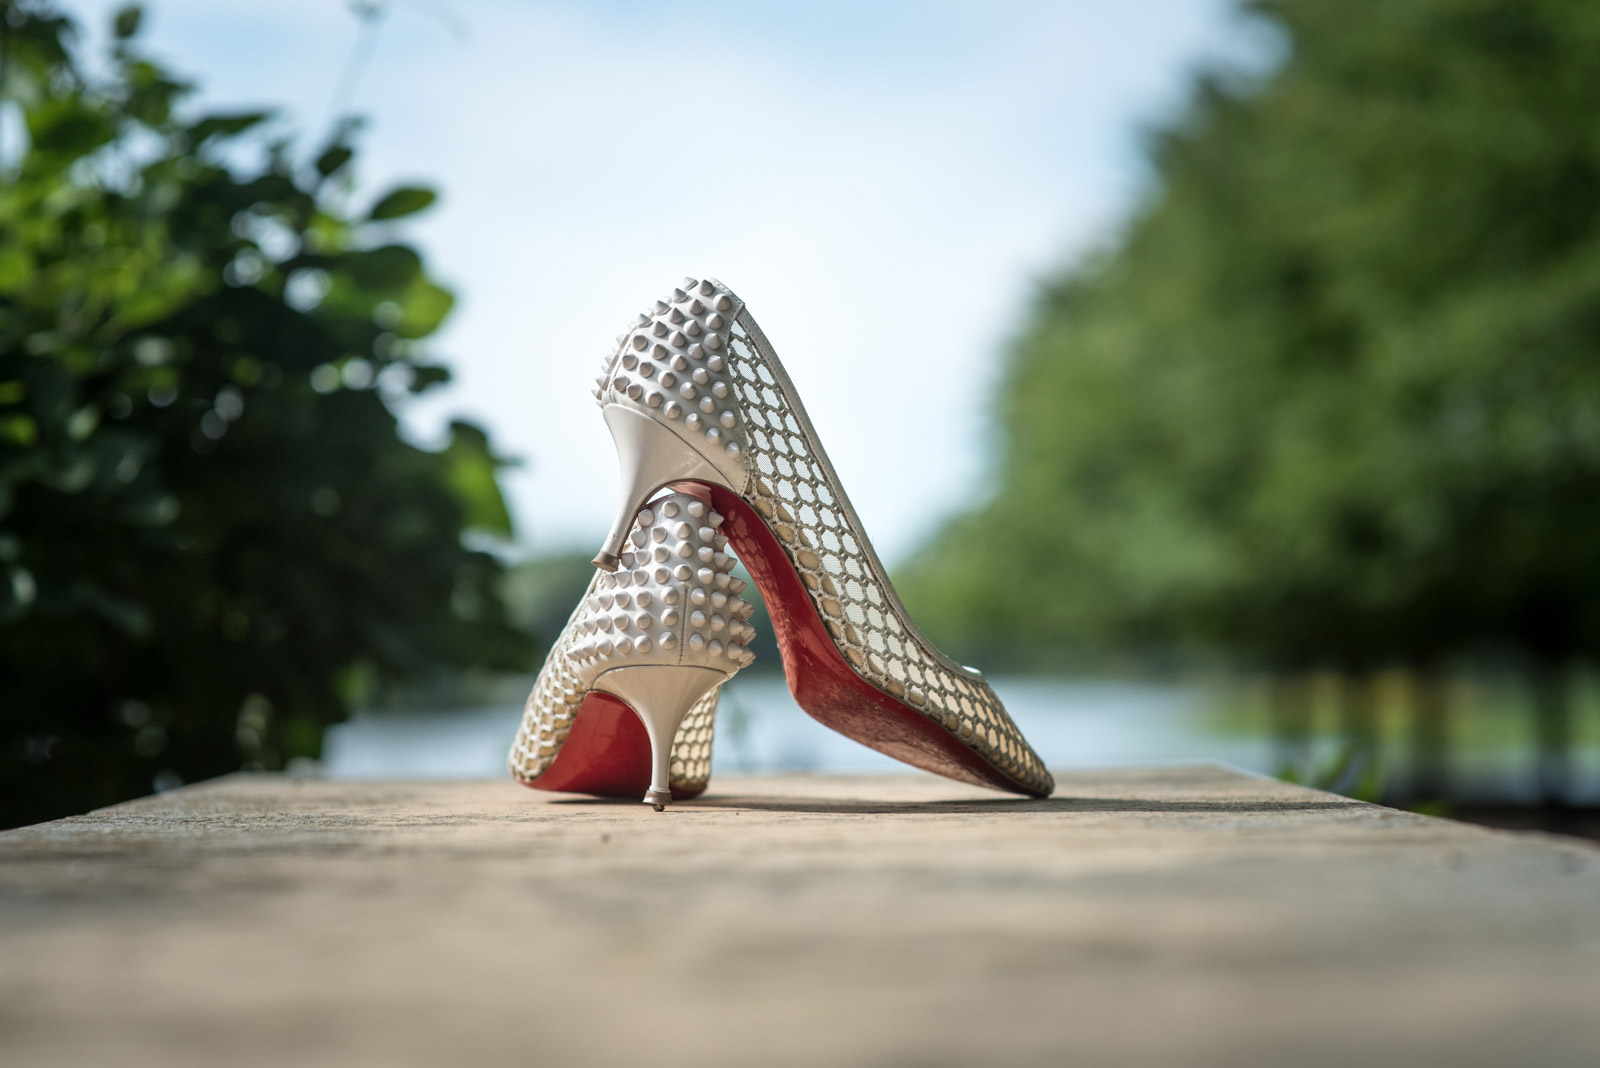 Pointy wedding shoes outdoors at Chicago Botanic Garden